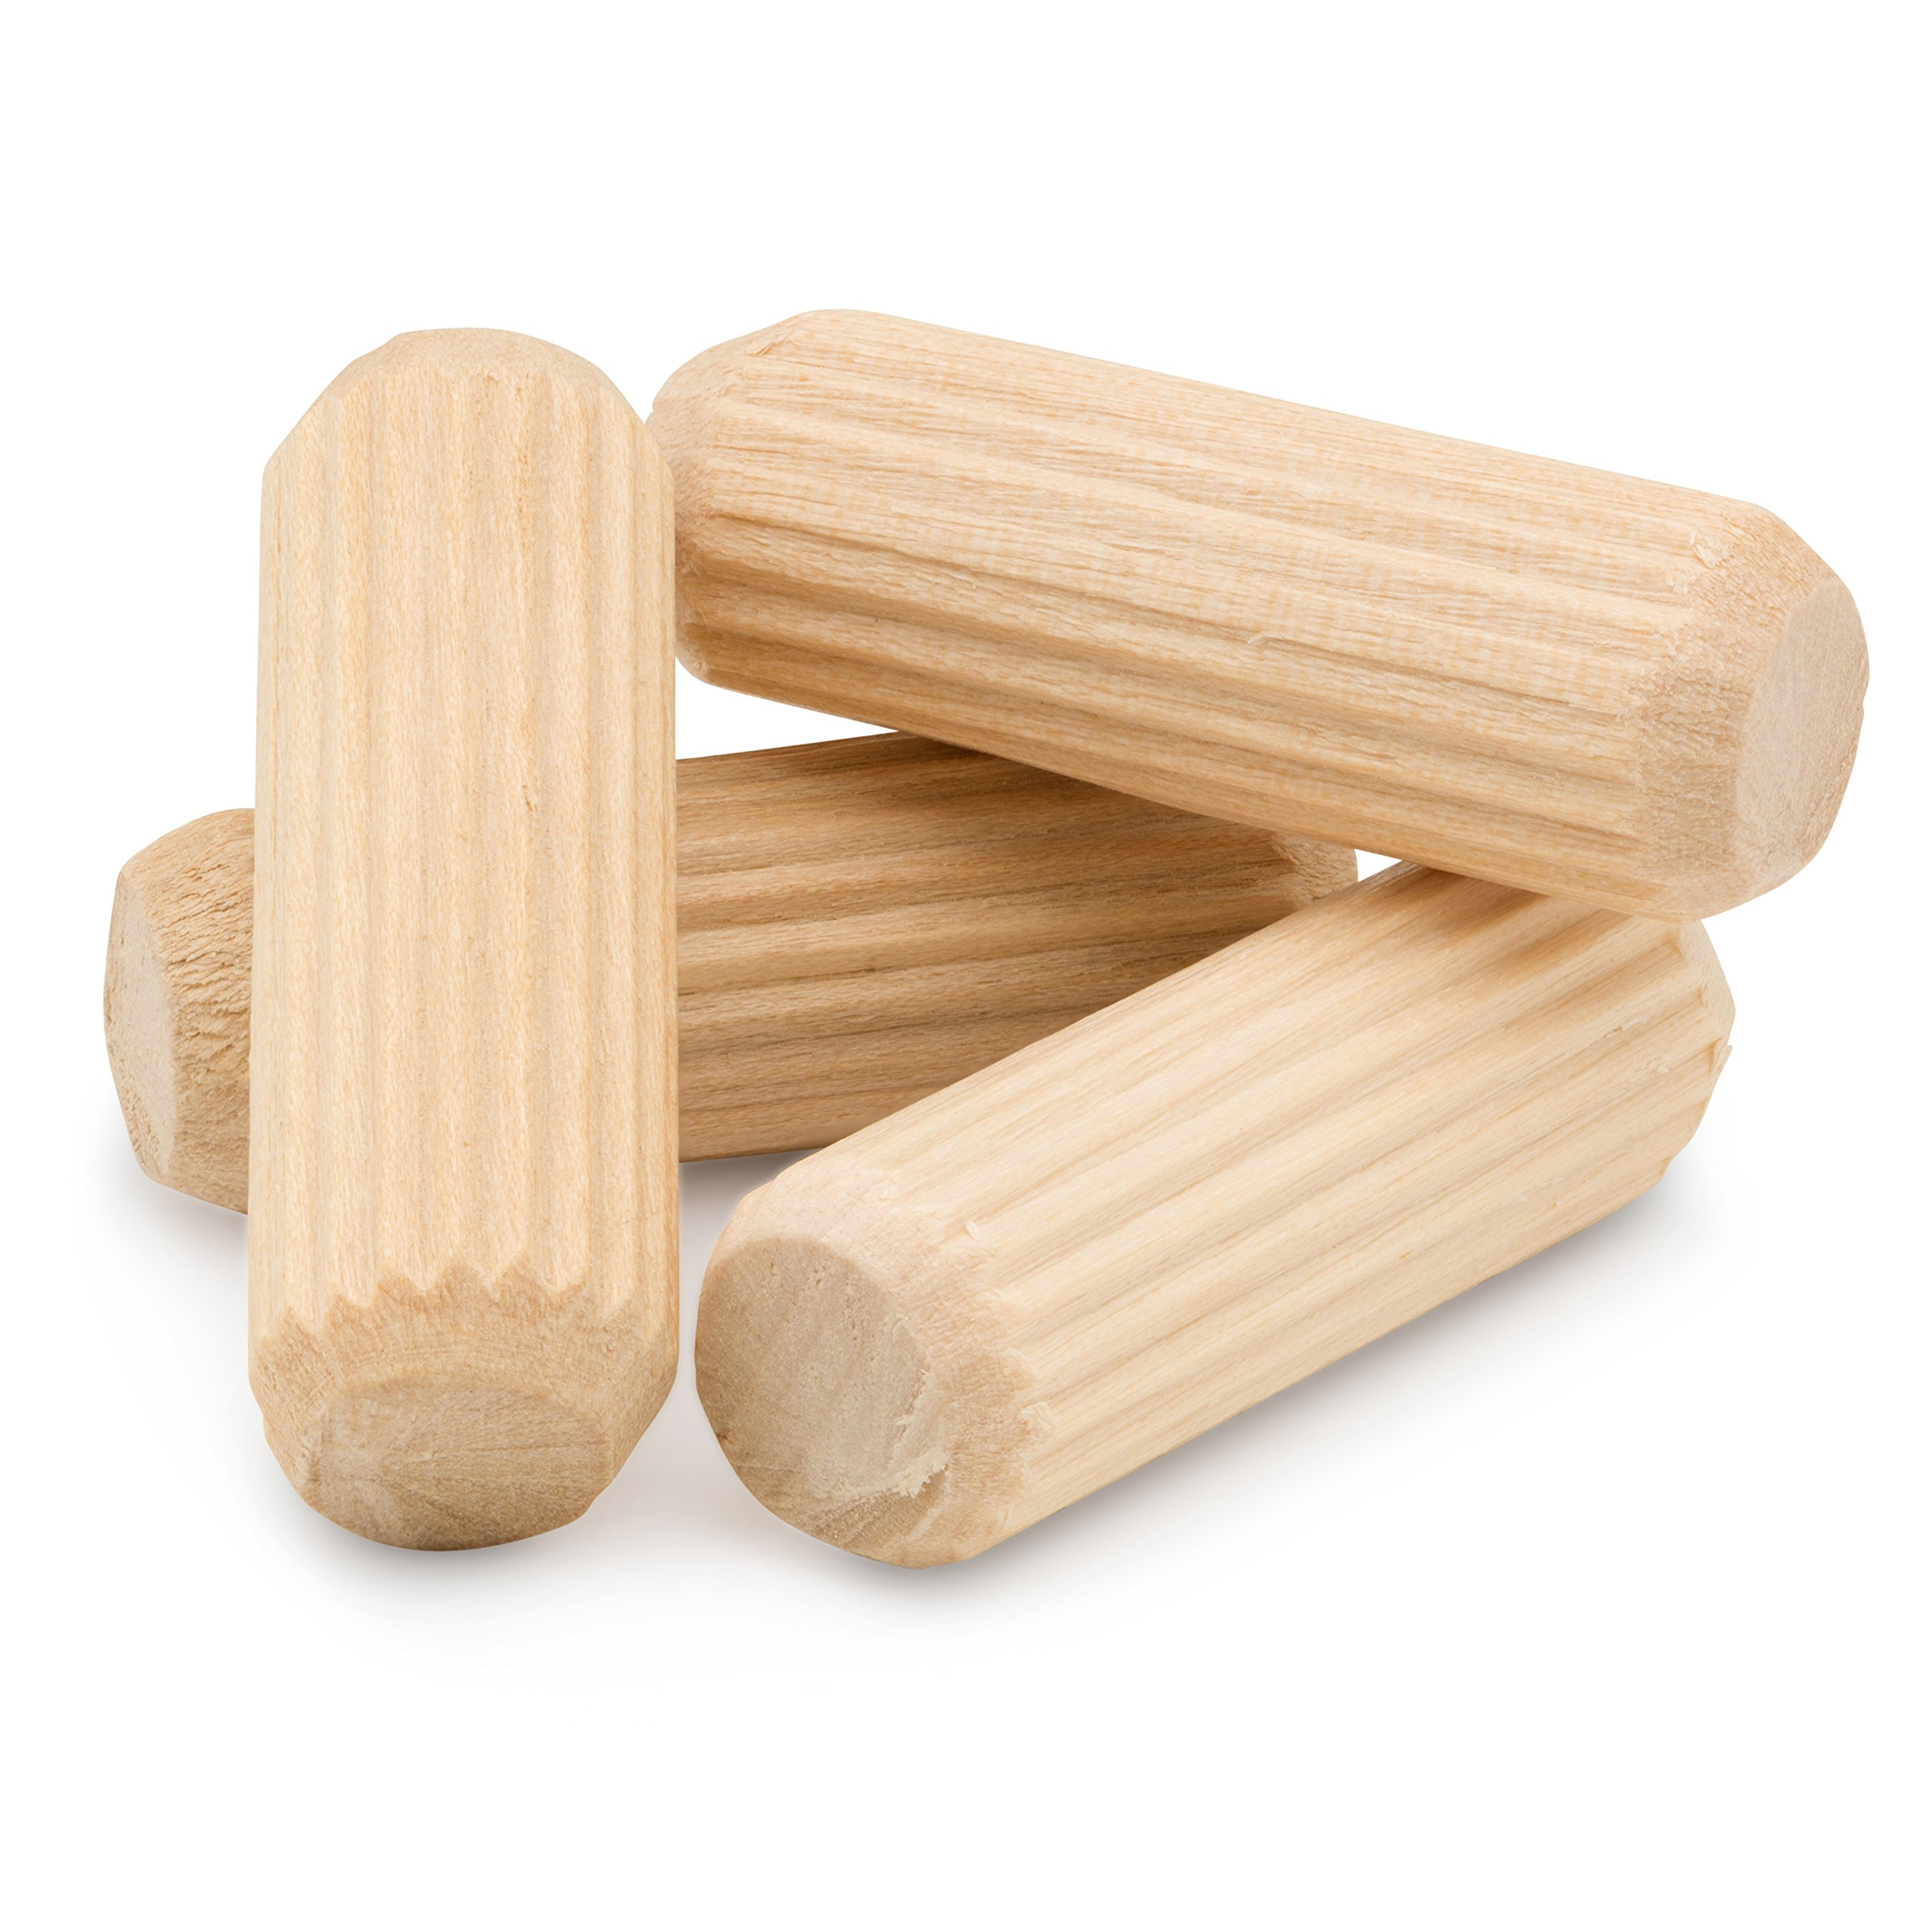 Wooden Dowel Pins 3/8'' x 1-1/2'' - Pack of 500 Straight Fluted Dowel Pins with Beveled End - by Woodpeckers